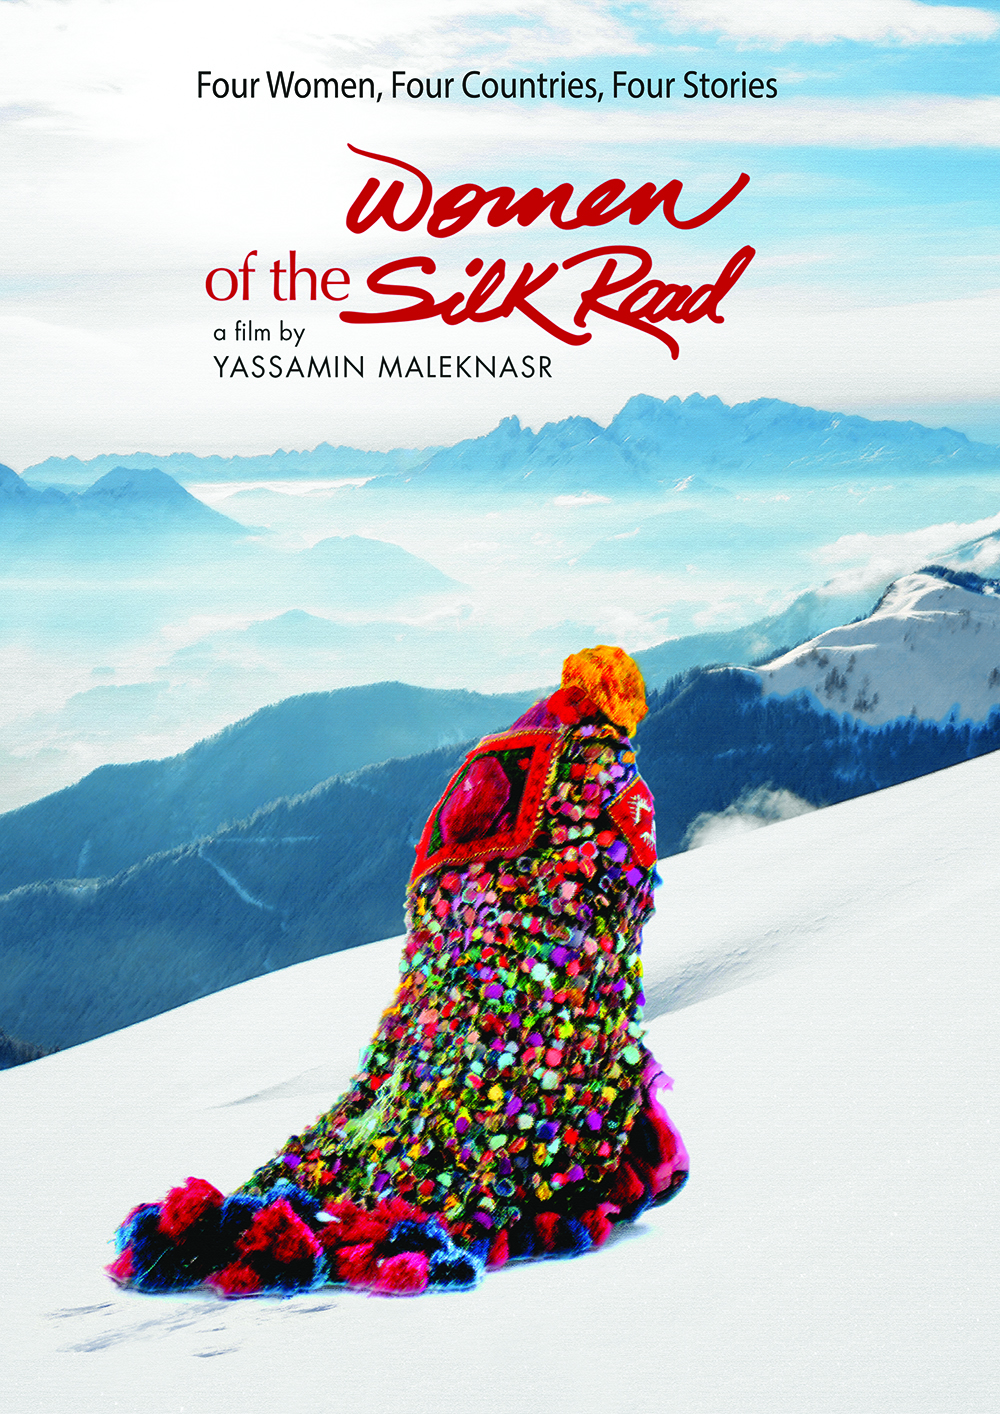 Women of the Silk Road